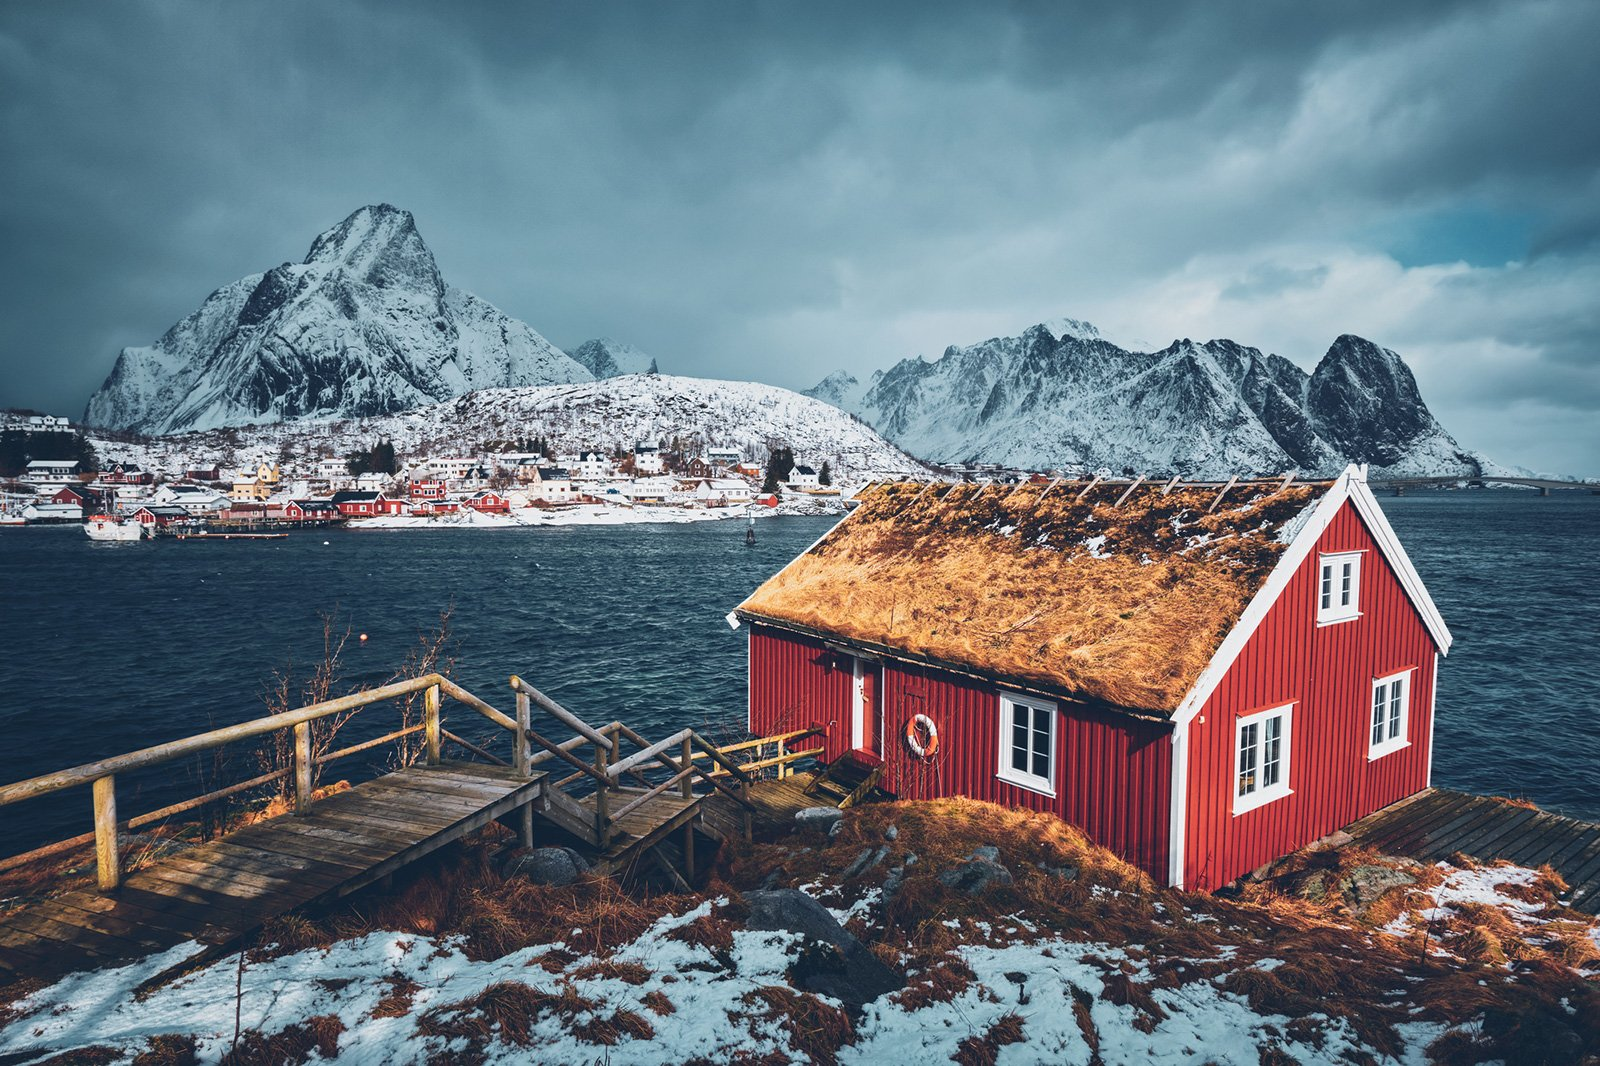 a red house in Norway